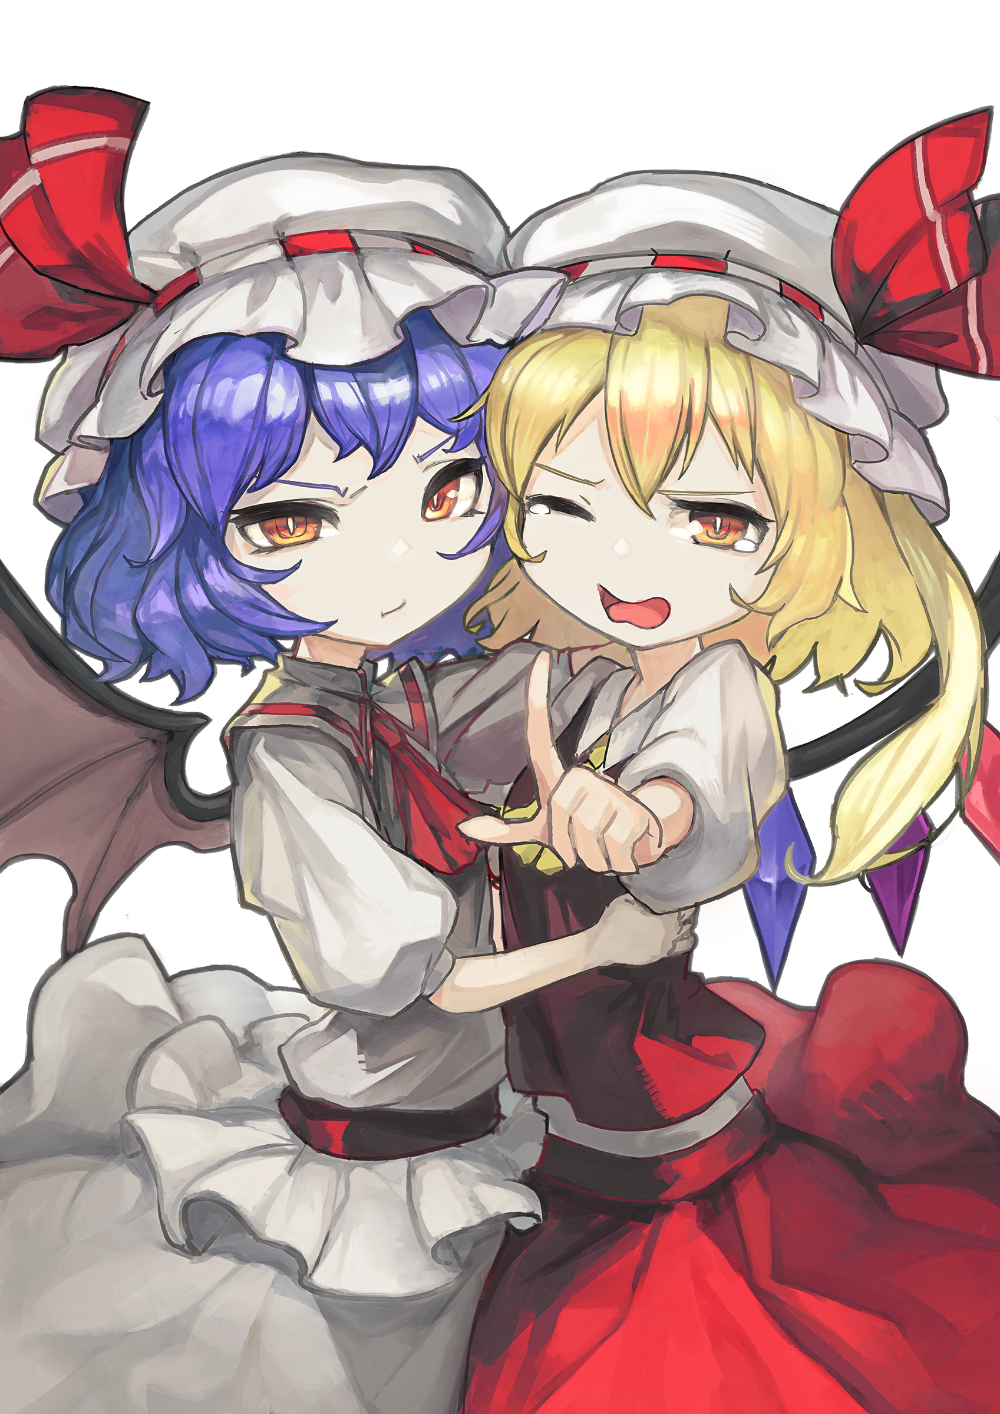 touhou project flandre scarlet remilia scarlet スカーレット姉妹 pixiv 東方 キャラ イラスト スカーレット